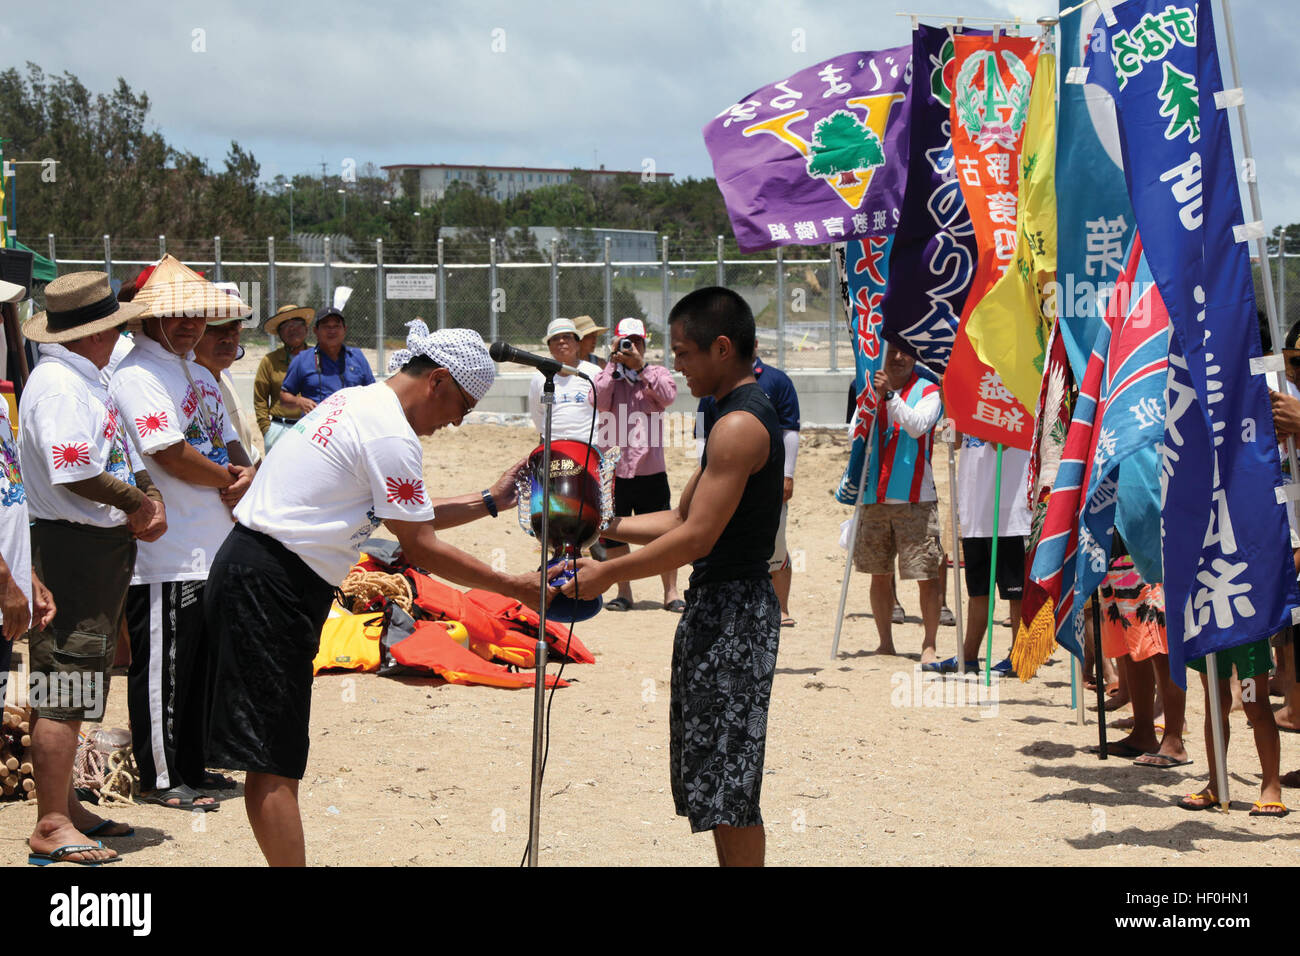 A member of last year's championship team hands over the trophy to a Henoko District official during the annual - Stock Image